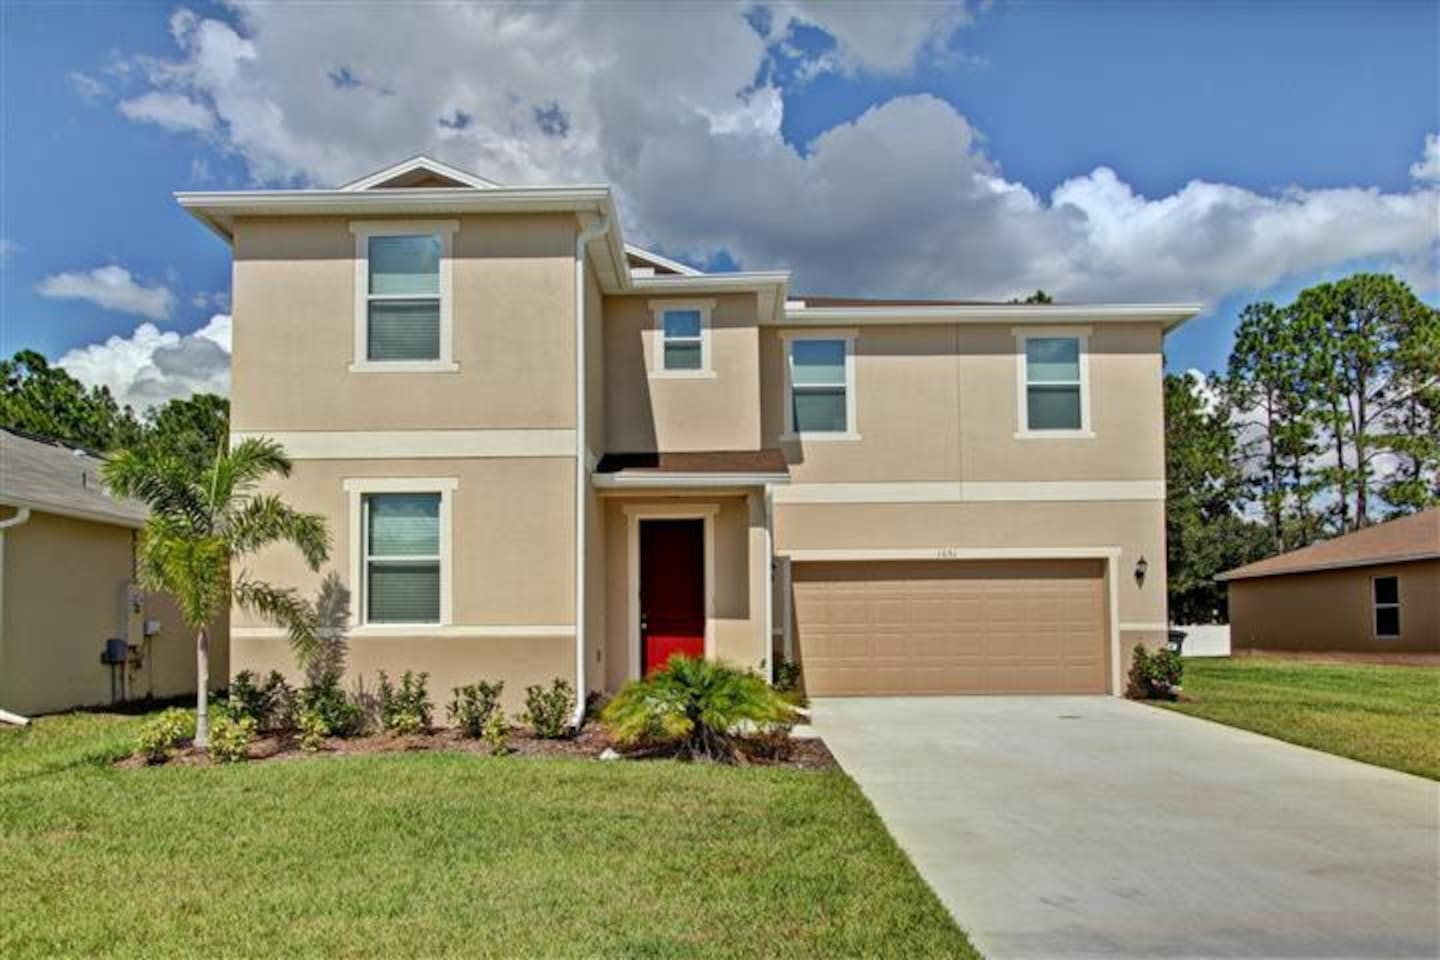 New 8br/5ba 3600 Sqft pool home